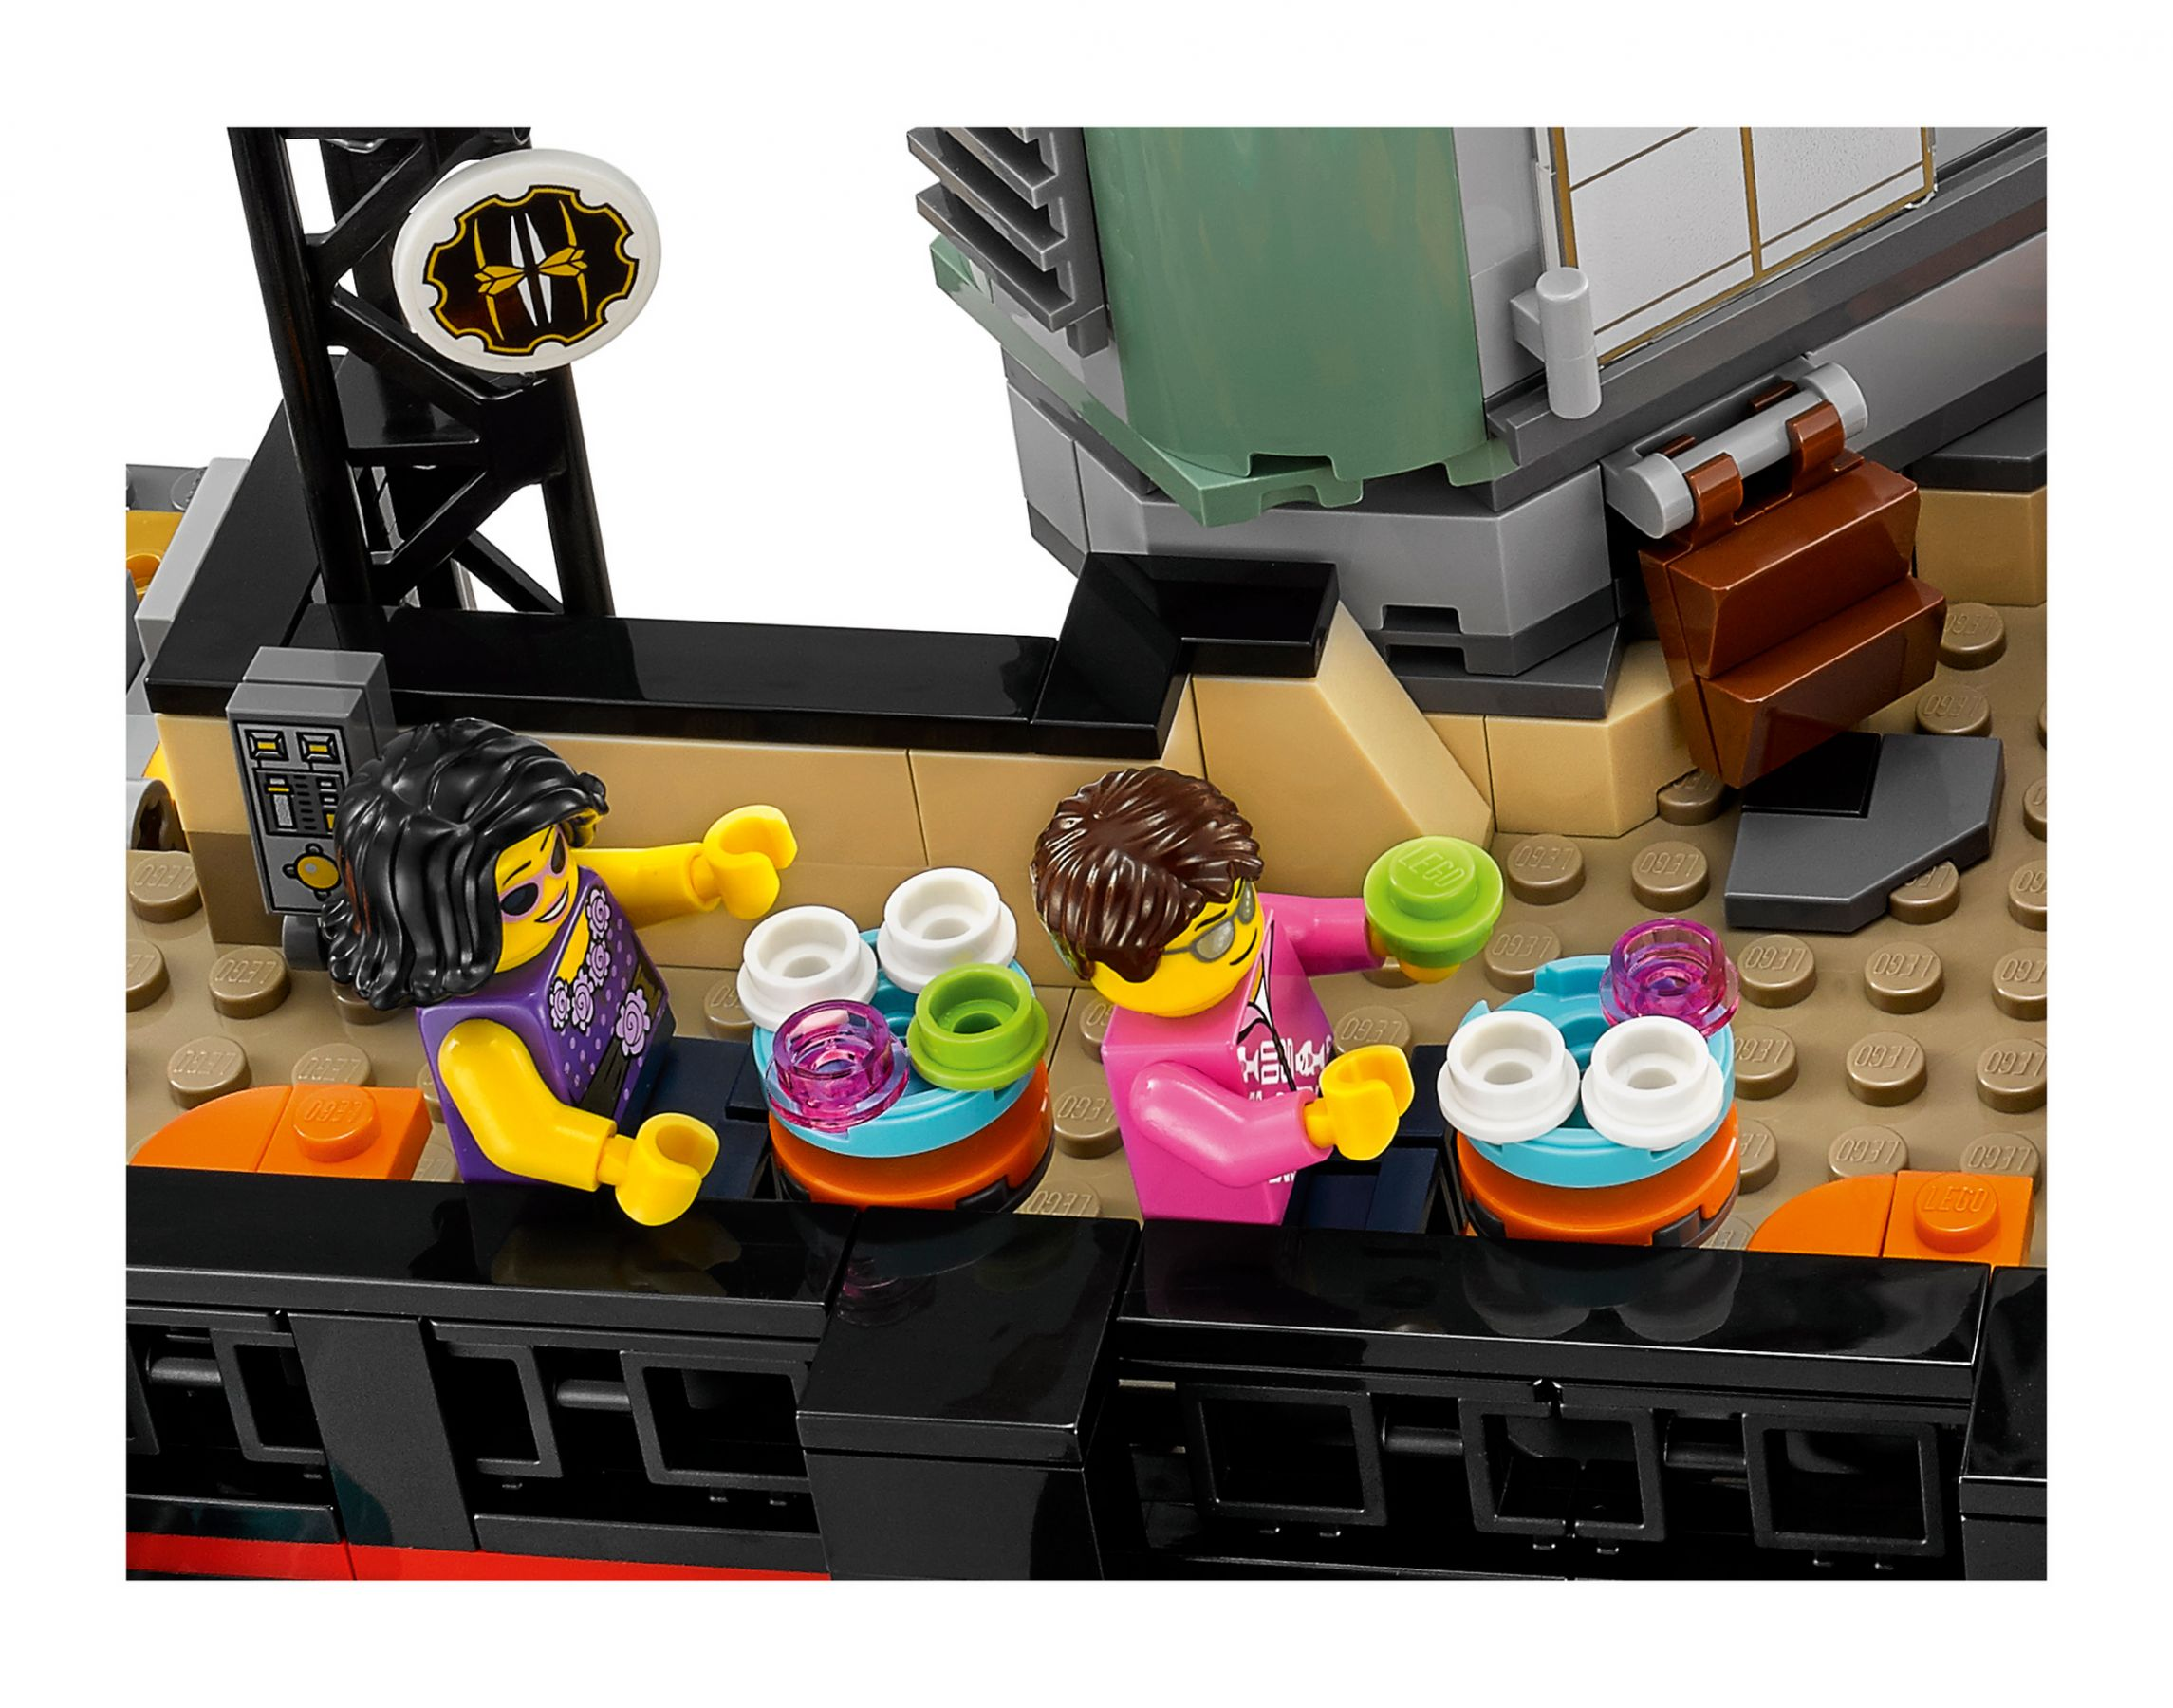 LEGO The LEGO Ninjago Movie 70620 Ninjago City LEGO_70620_alt7.jpg